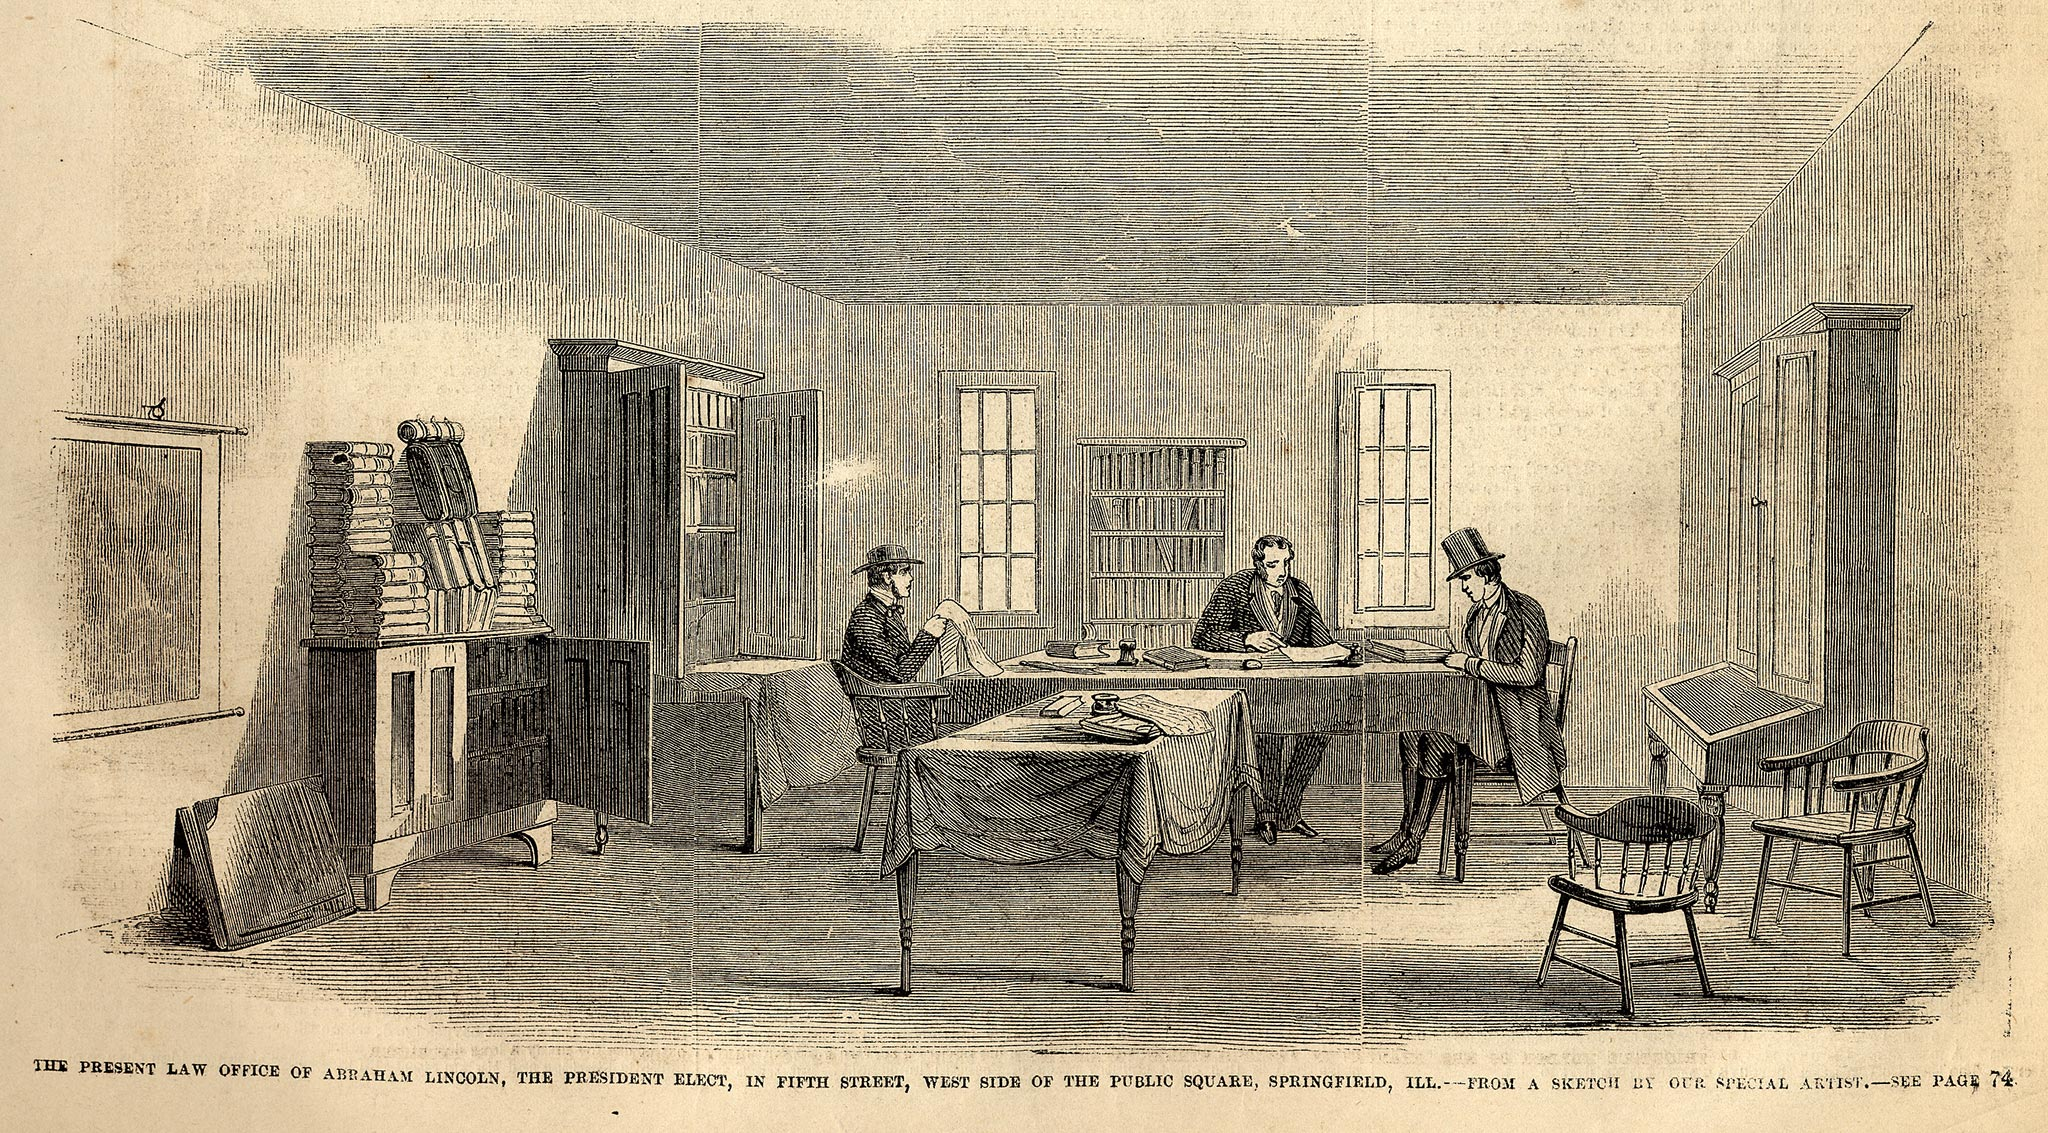 Lincoln & Herndon Law Office 1860 published in Leslie's Illustrated, Dec. 22, 1860